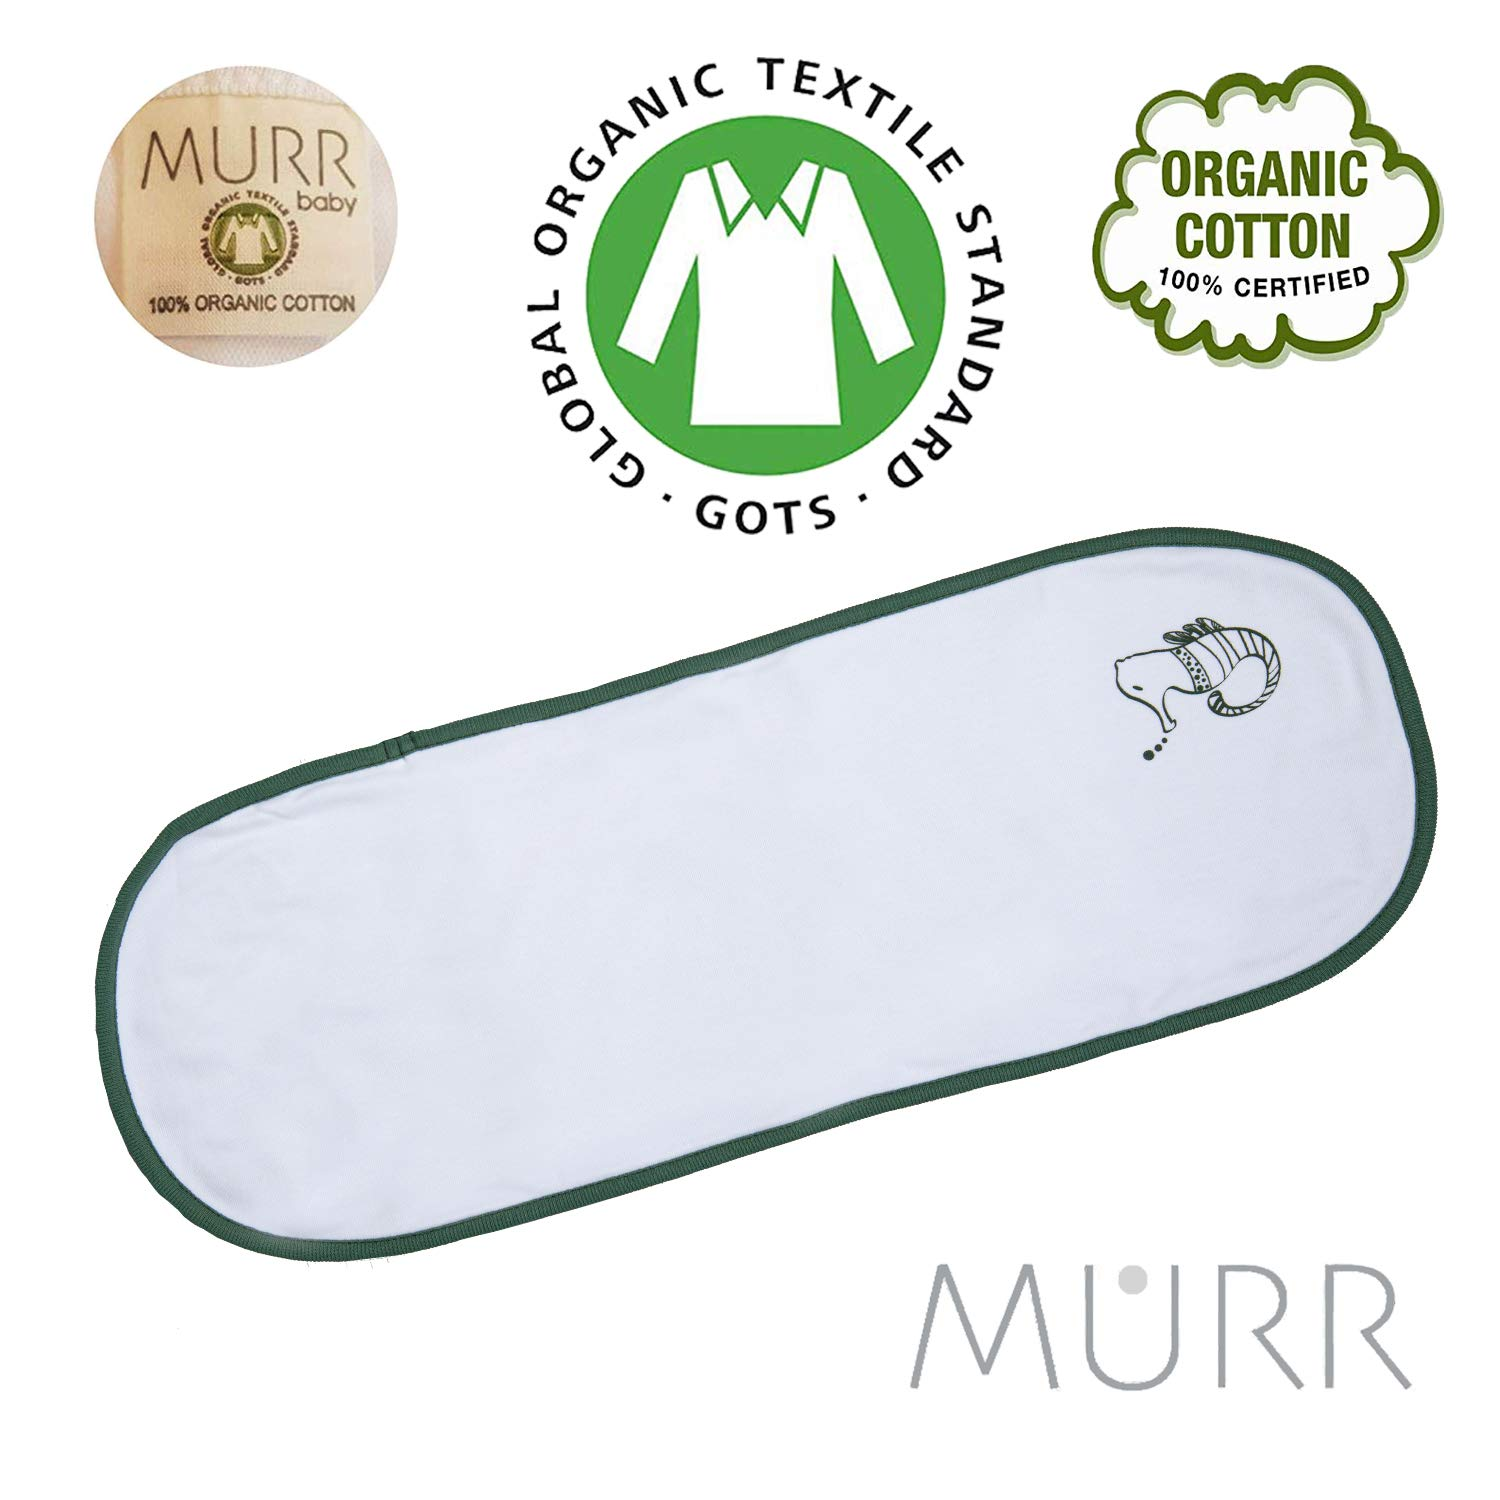 MURR Baby Burp Cloths for Boys Girls Organic Cotton Soft and Absorbent Cloth Diapers Burping Rags for Newborns Baby Shower/Registry Set by Murr Design (5 Pack)